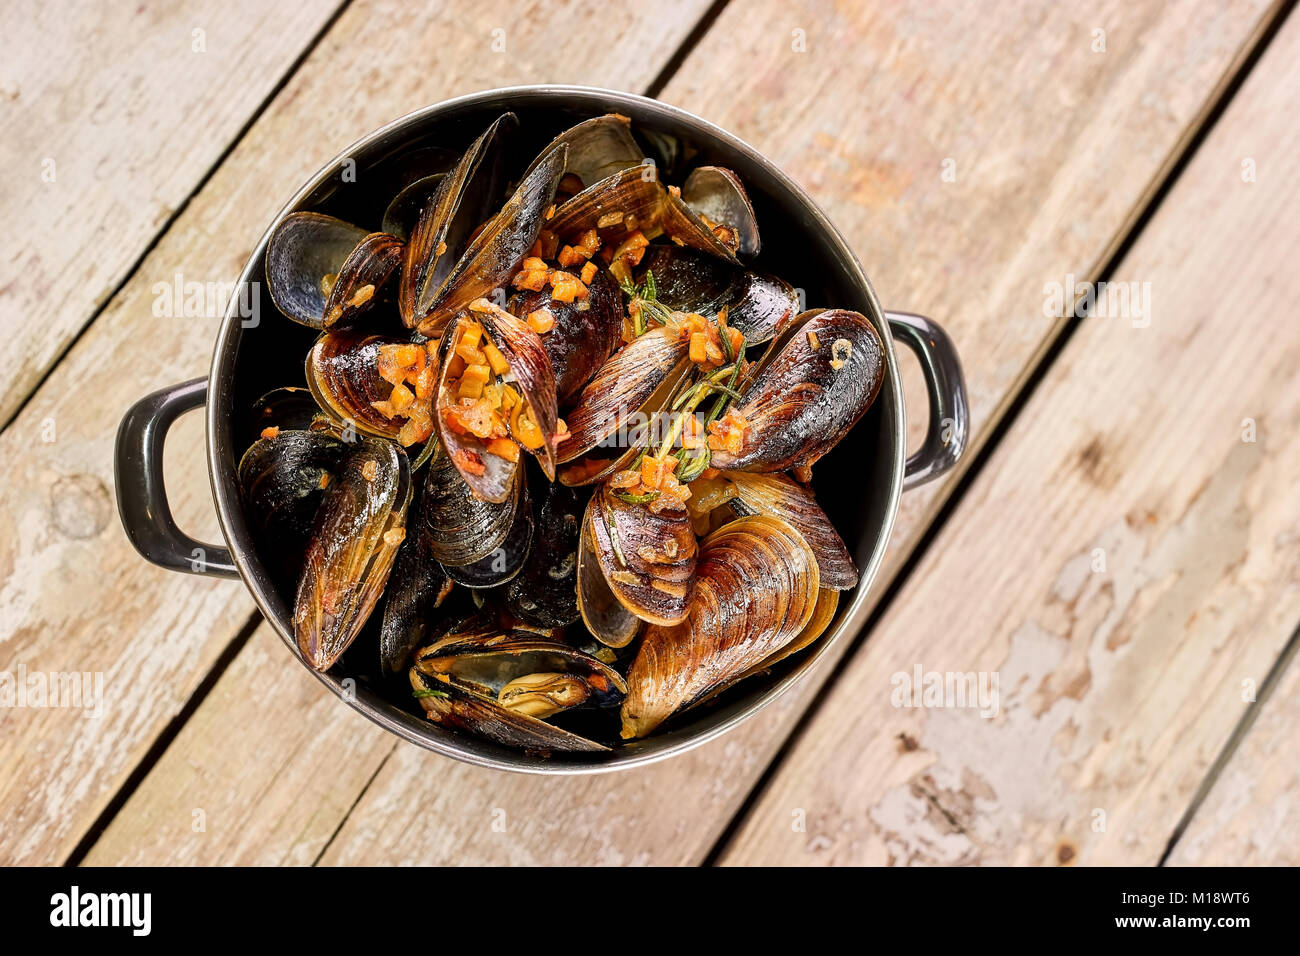 Saucepan of prepared mussels and vegetables. - Stock Image